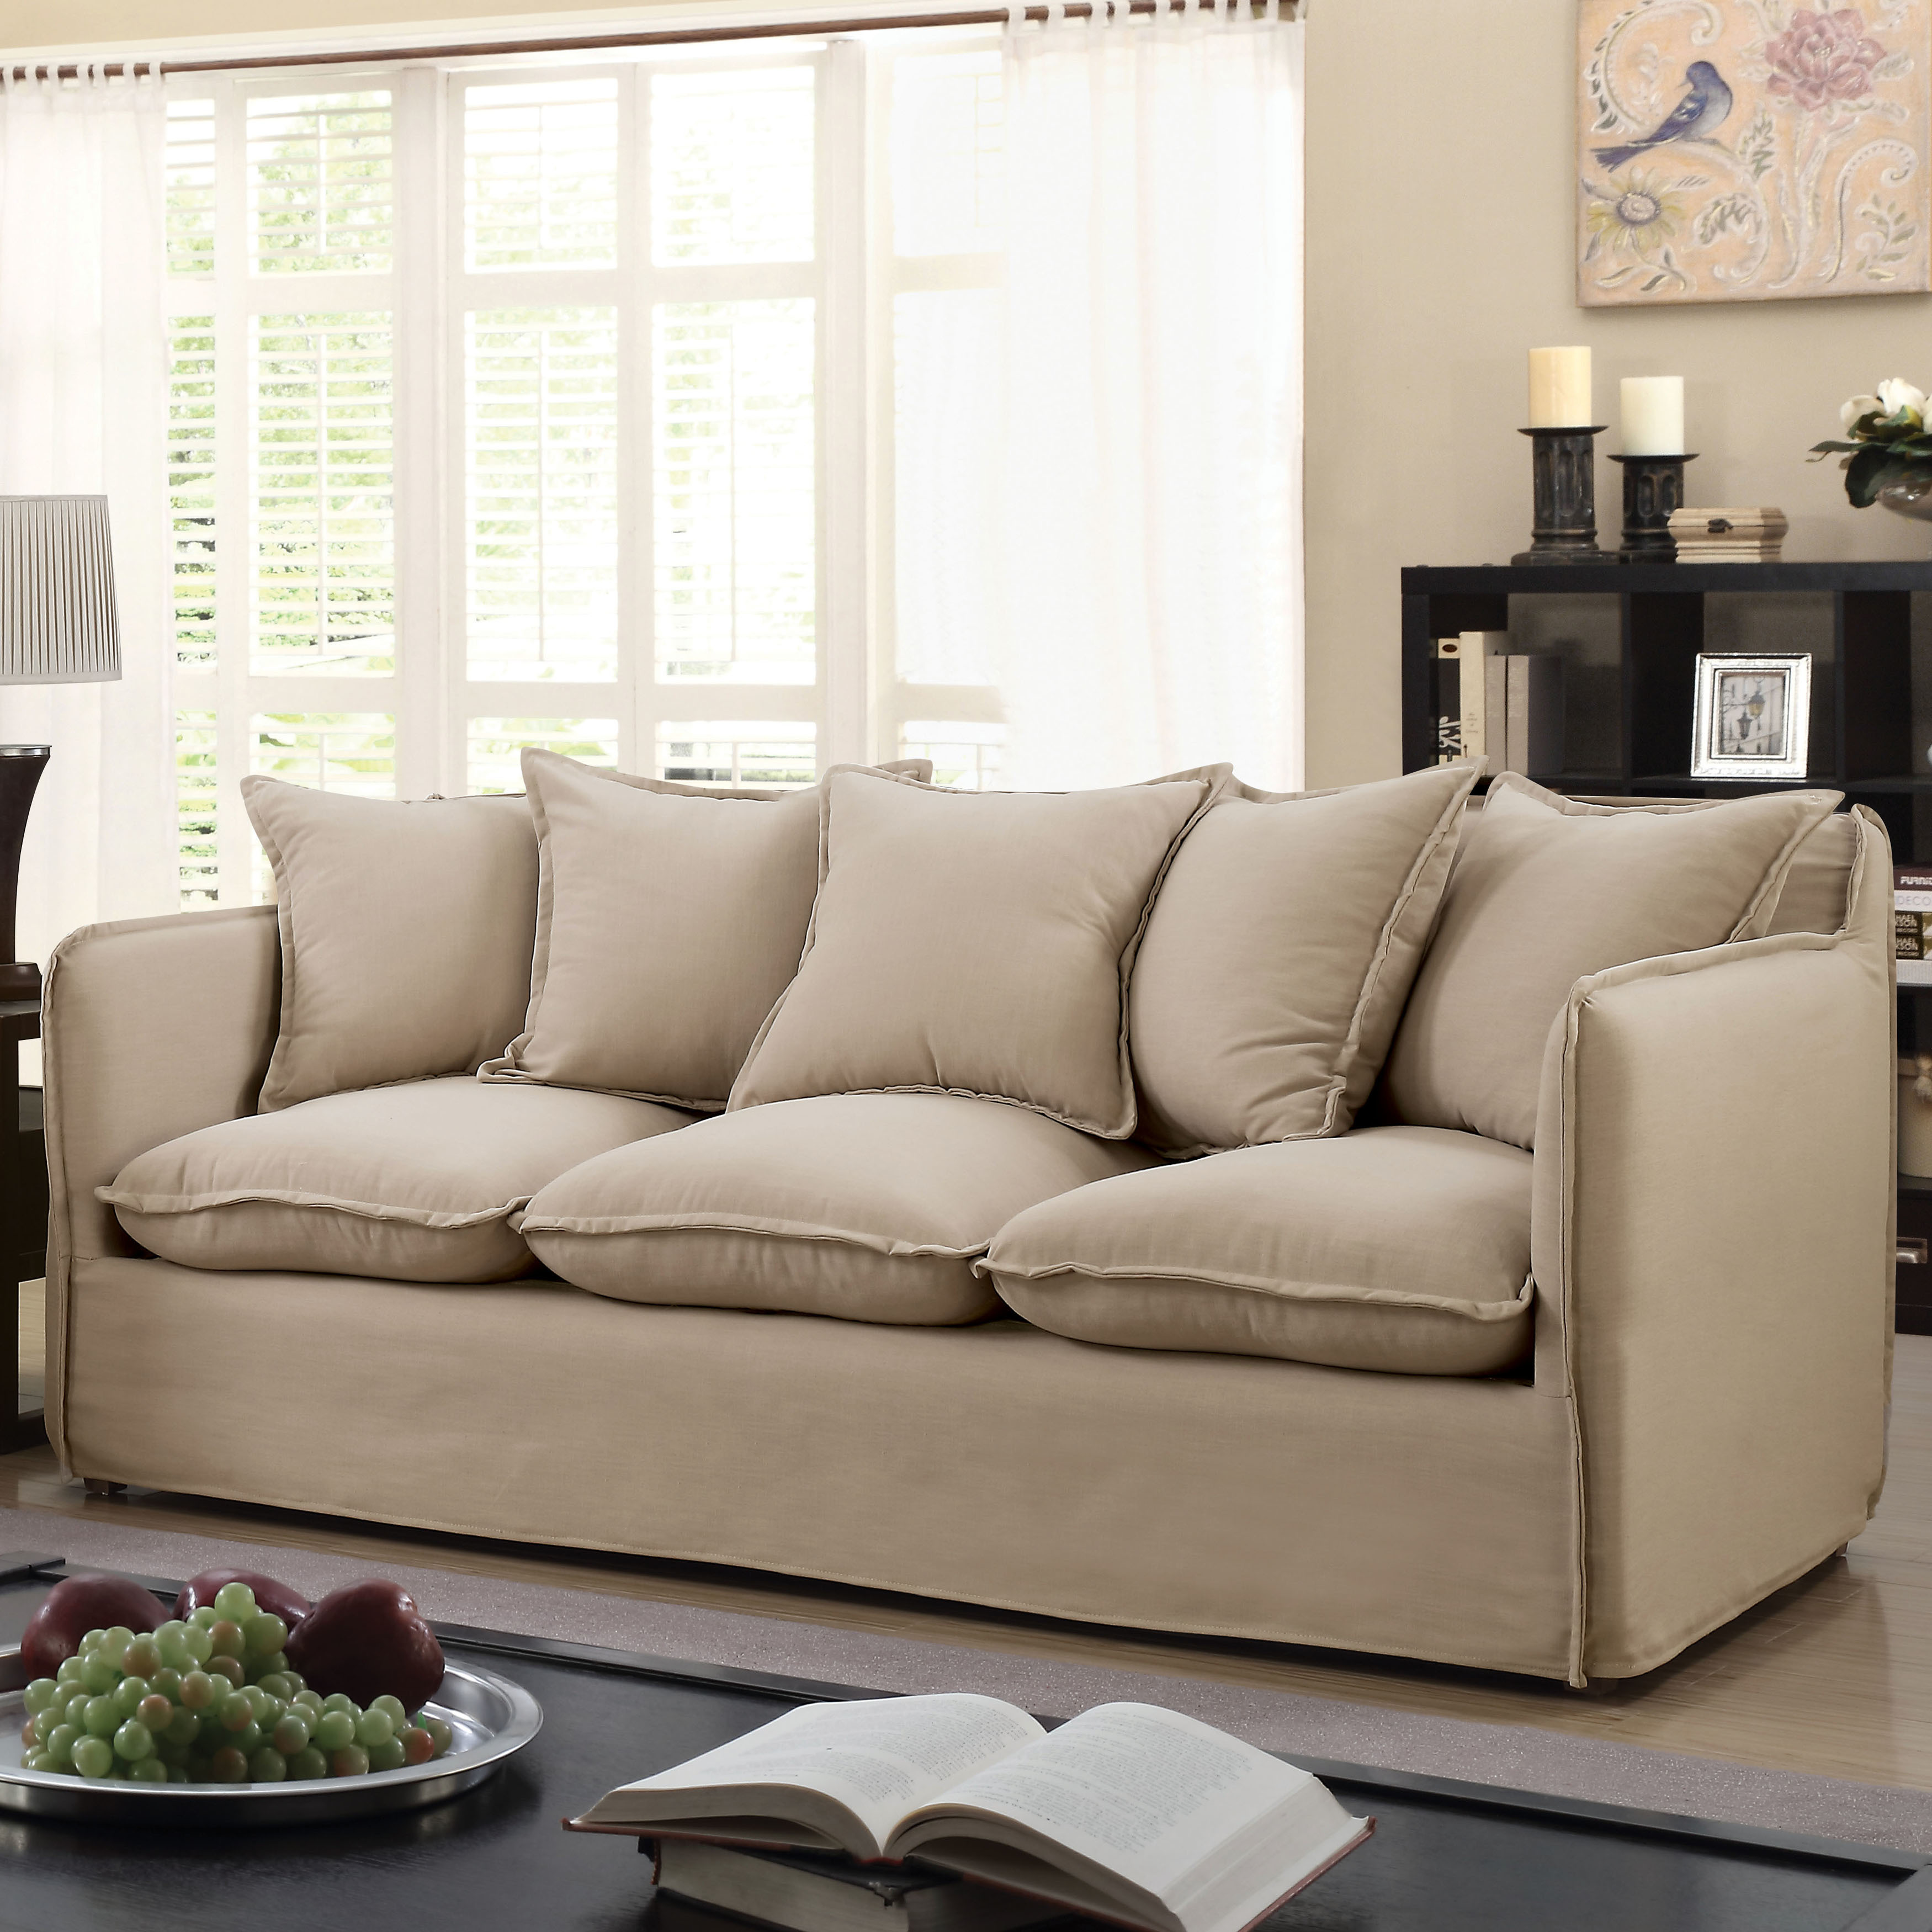 Furniture of America Telermon Classic Fabric Upholstered Slipcover ...